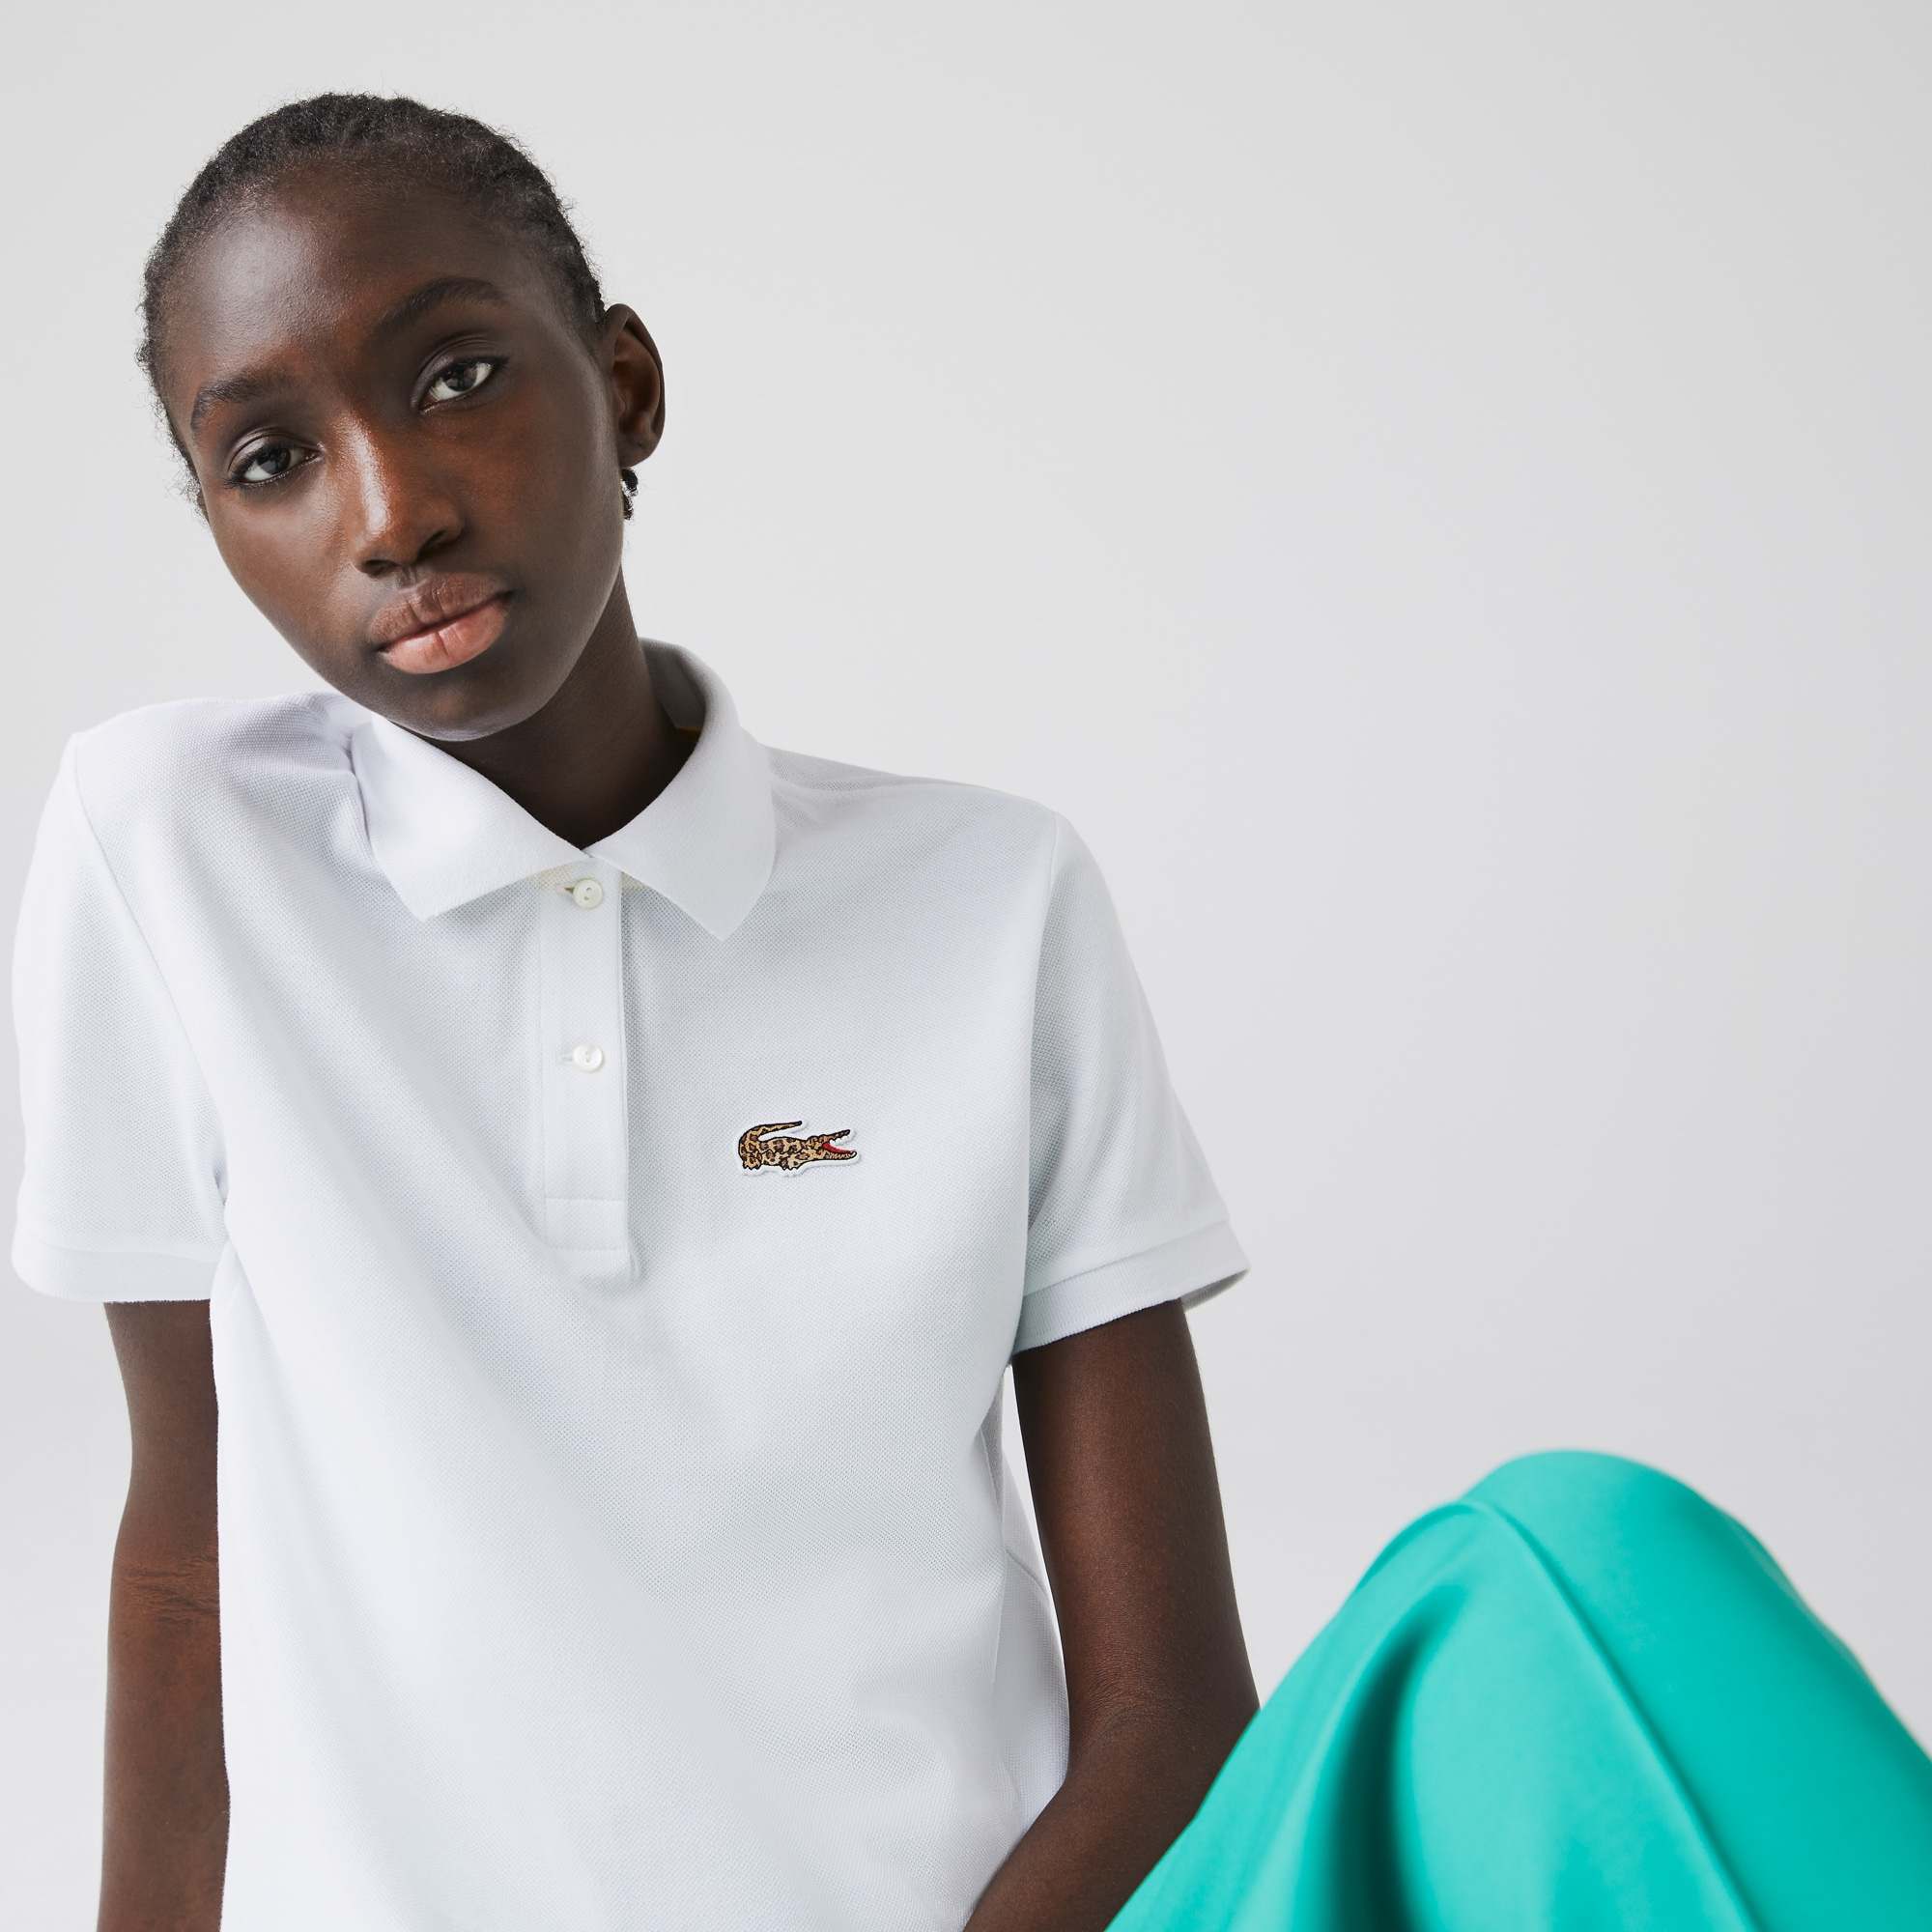 Women's Lacoste x National Geographic Cotton Pique Polo Shirt